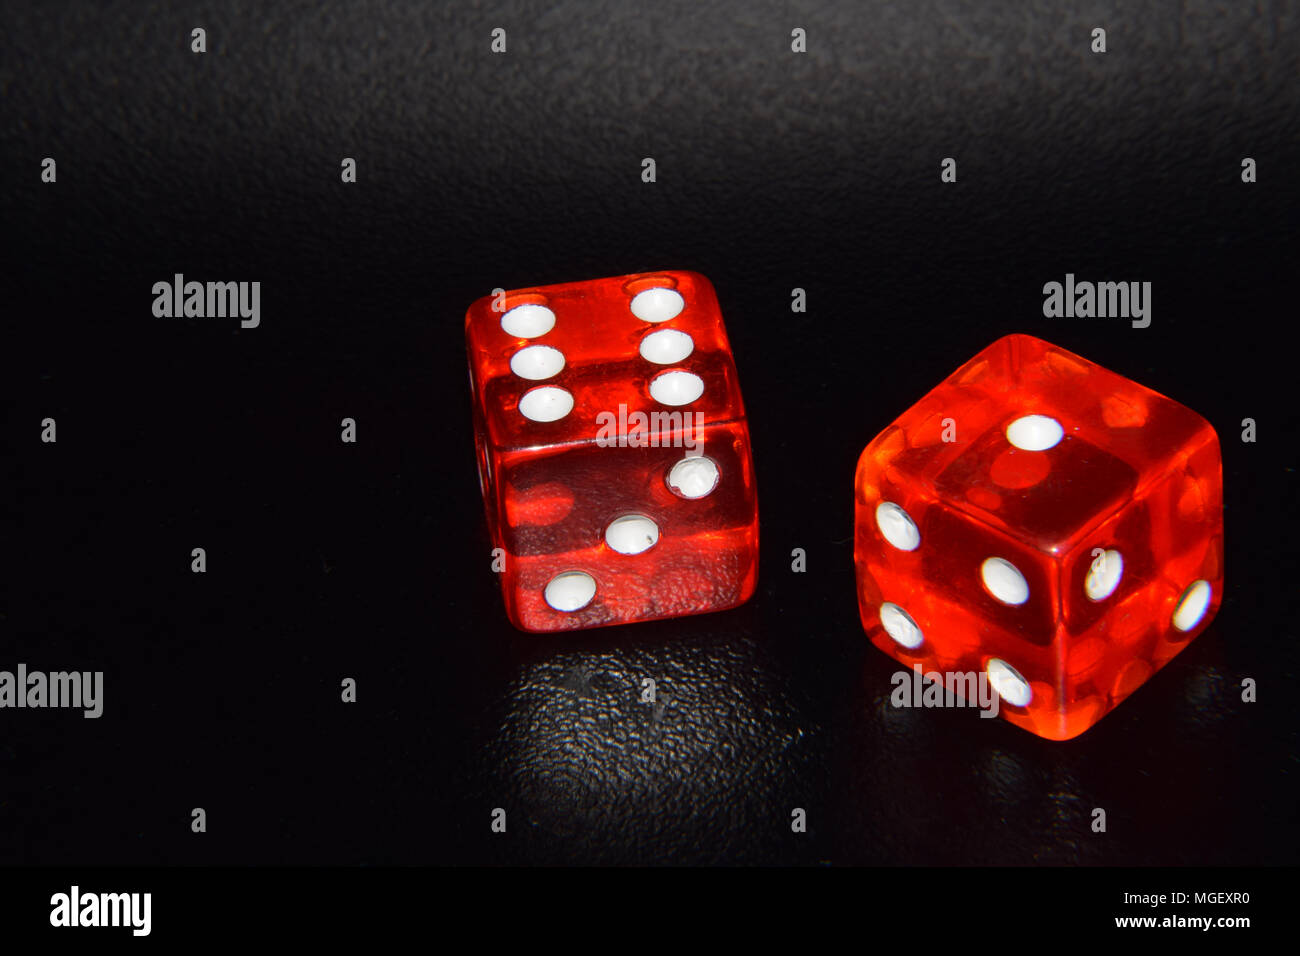 Red luminescent casino gambling dice on black reflecting background Stock Photo